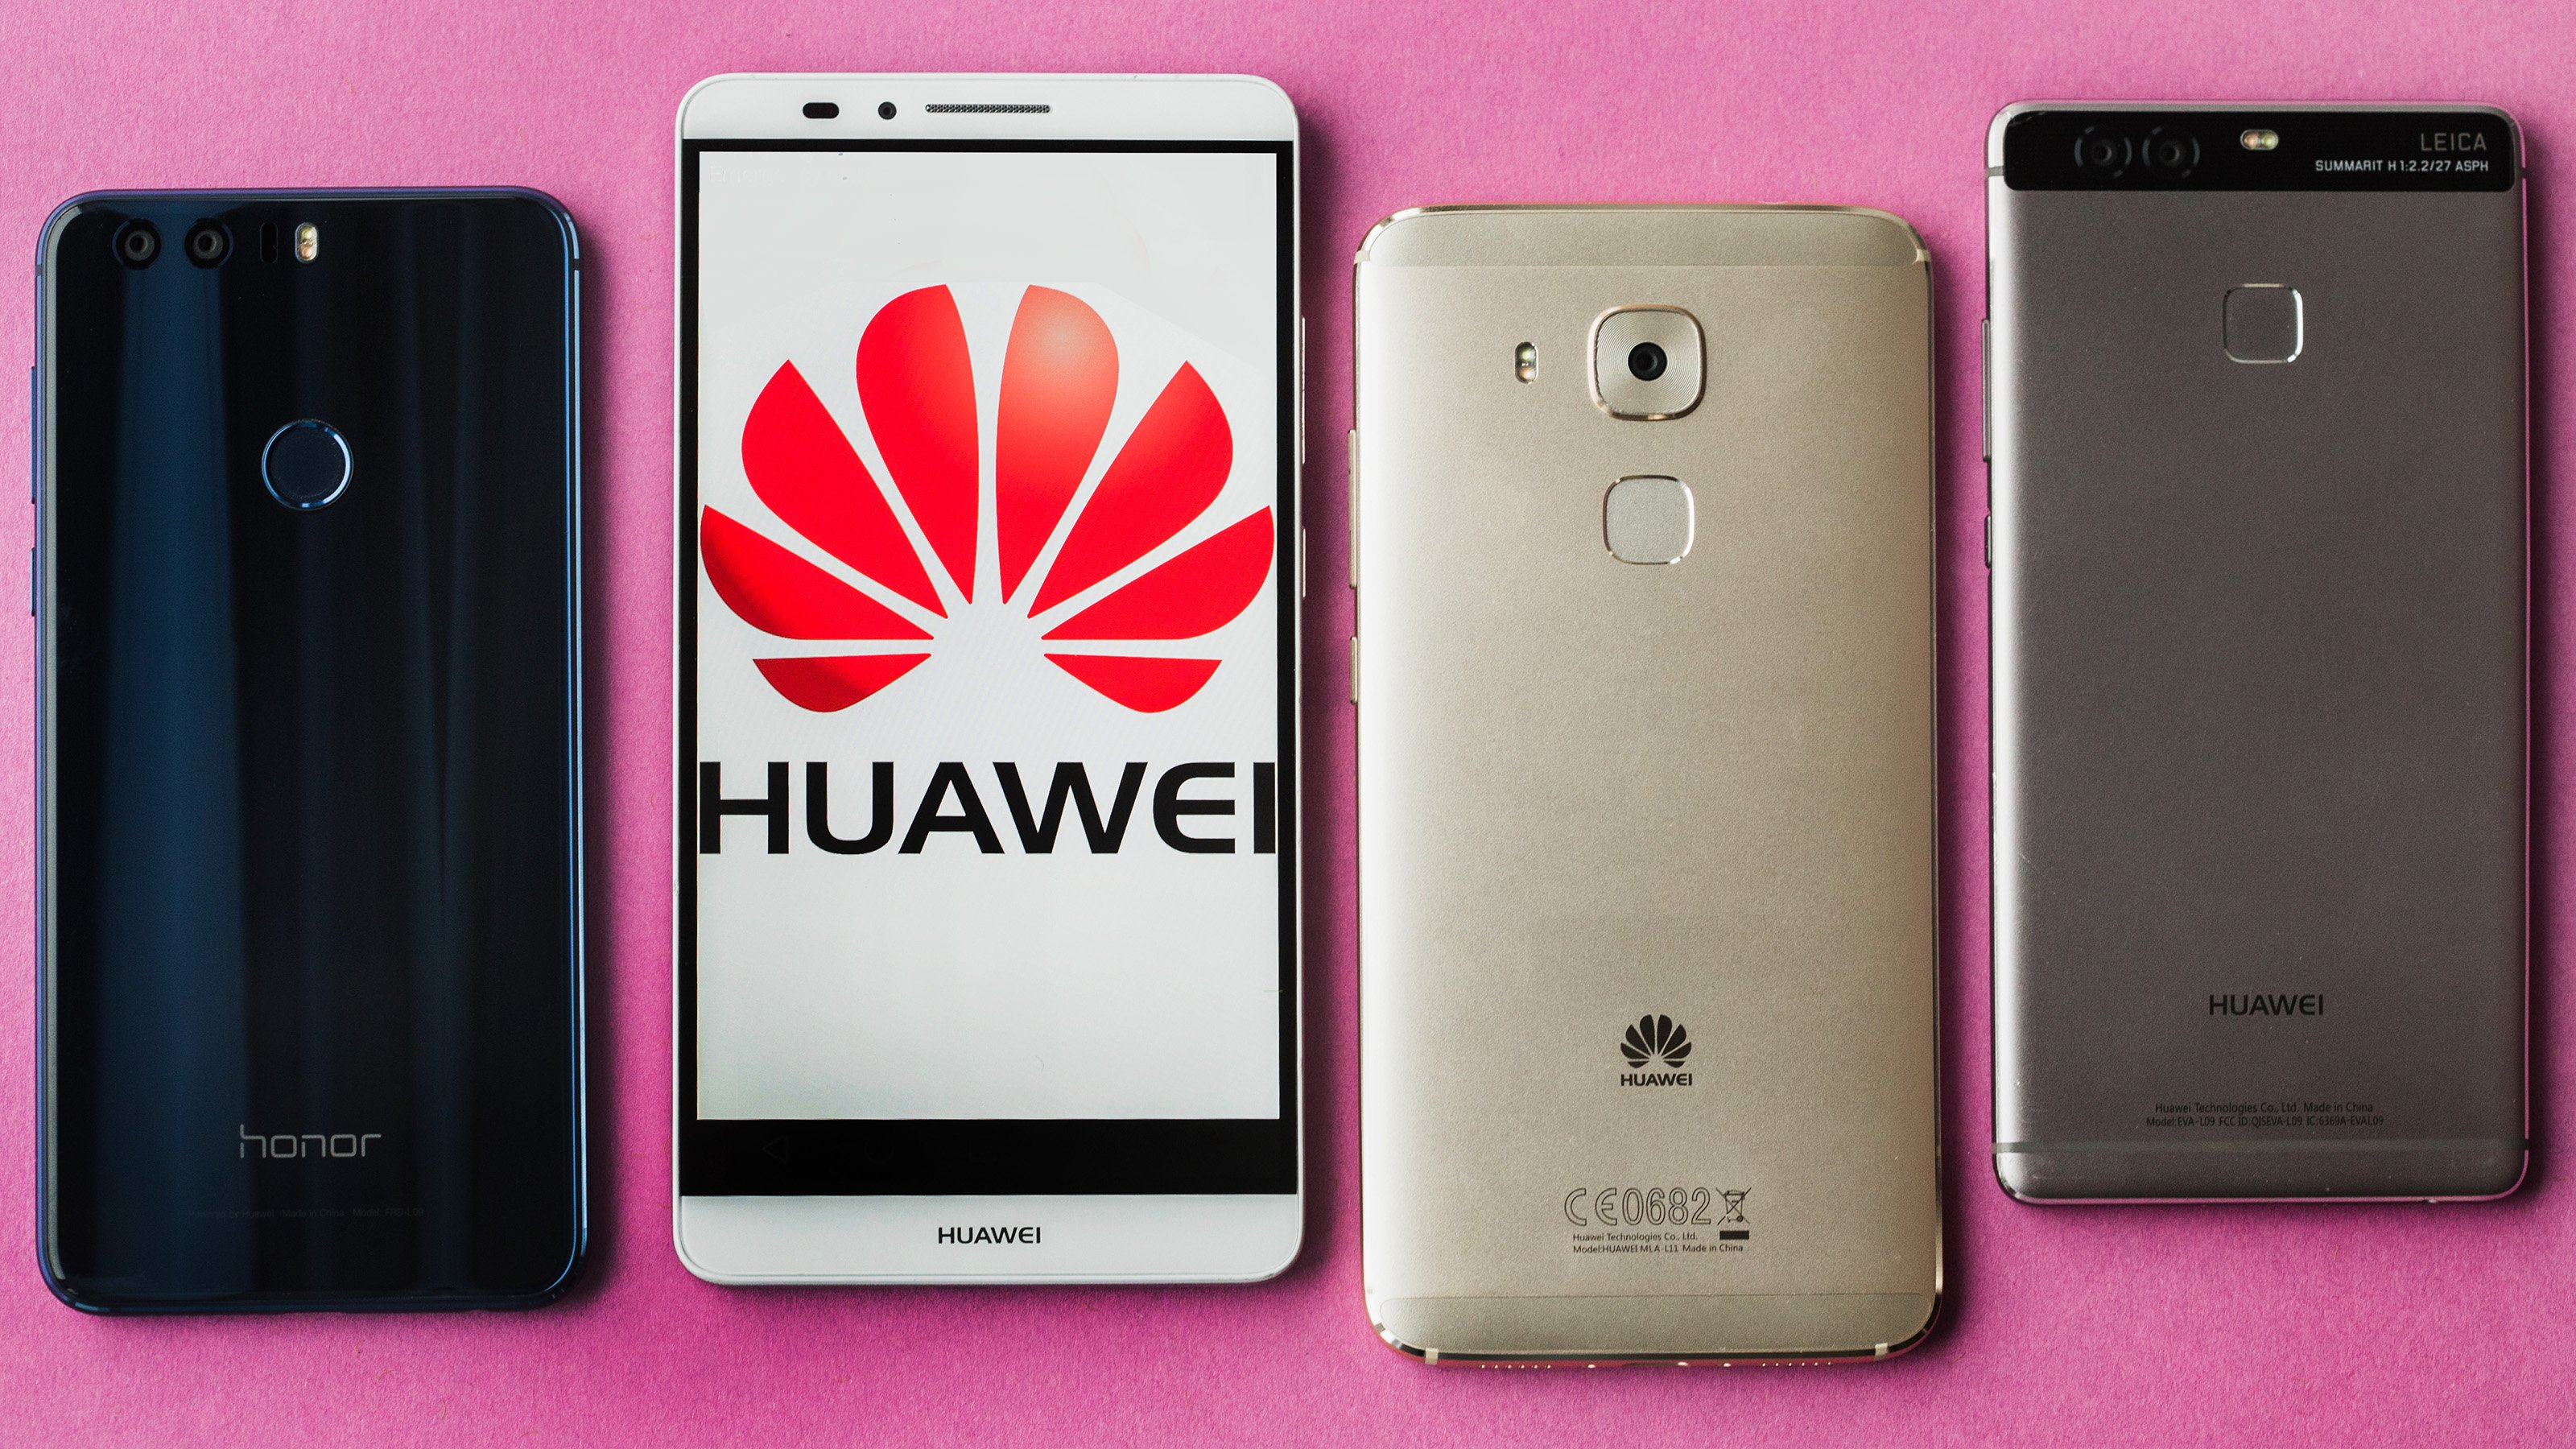 Huawei Benchmark Testing And Cheating – The Truth Is Here